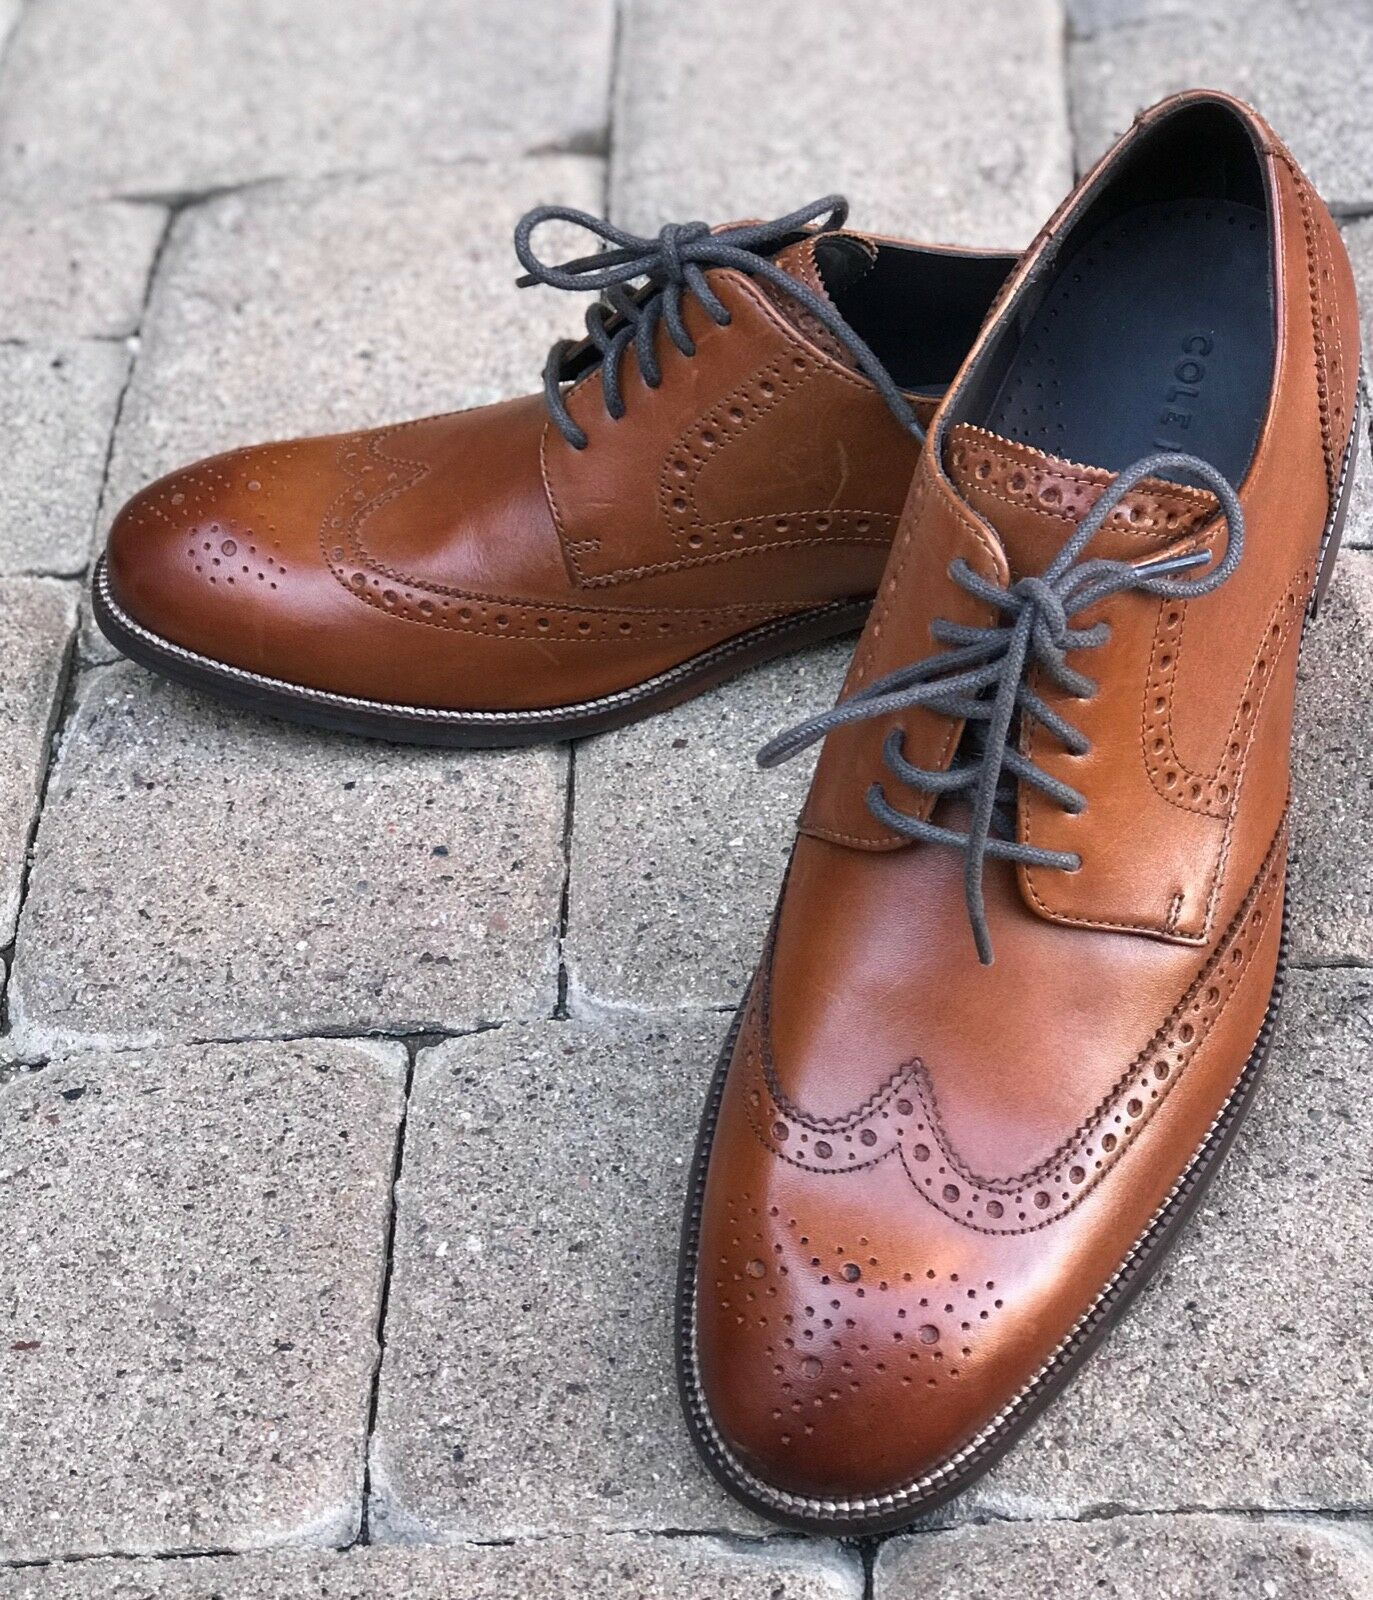 NEW Men's SZ 10 Almond  Brown Leather COLE HAAN Lace-up Dress shoes NORSTROM